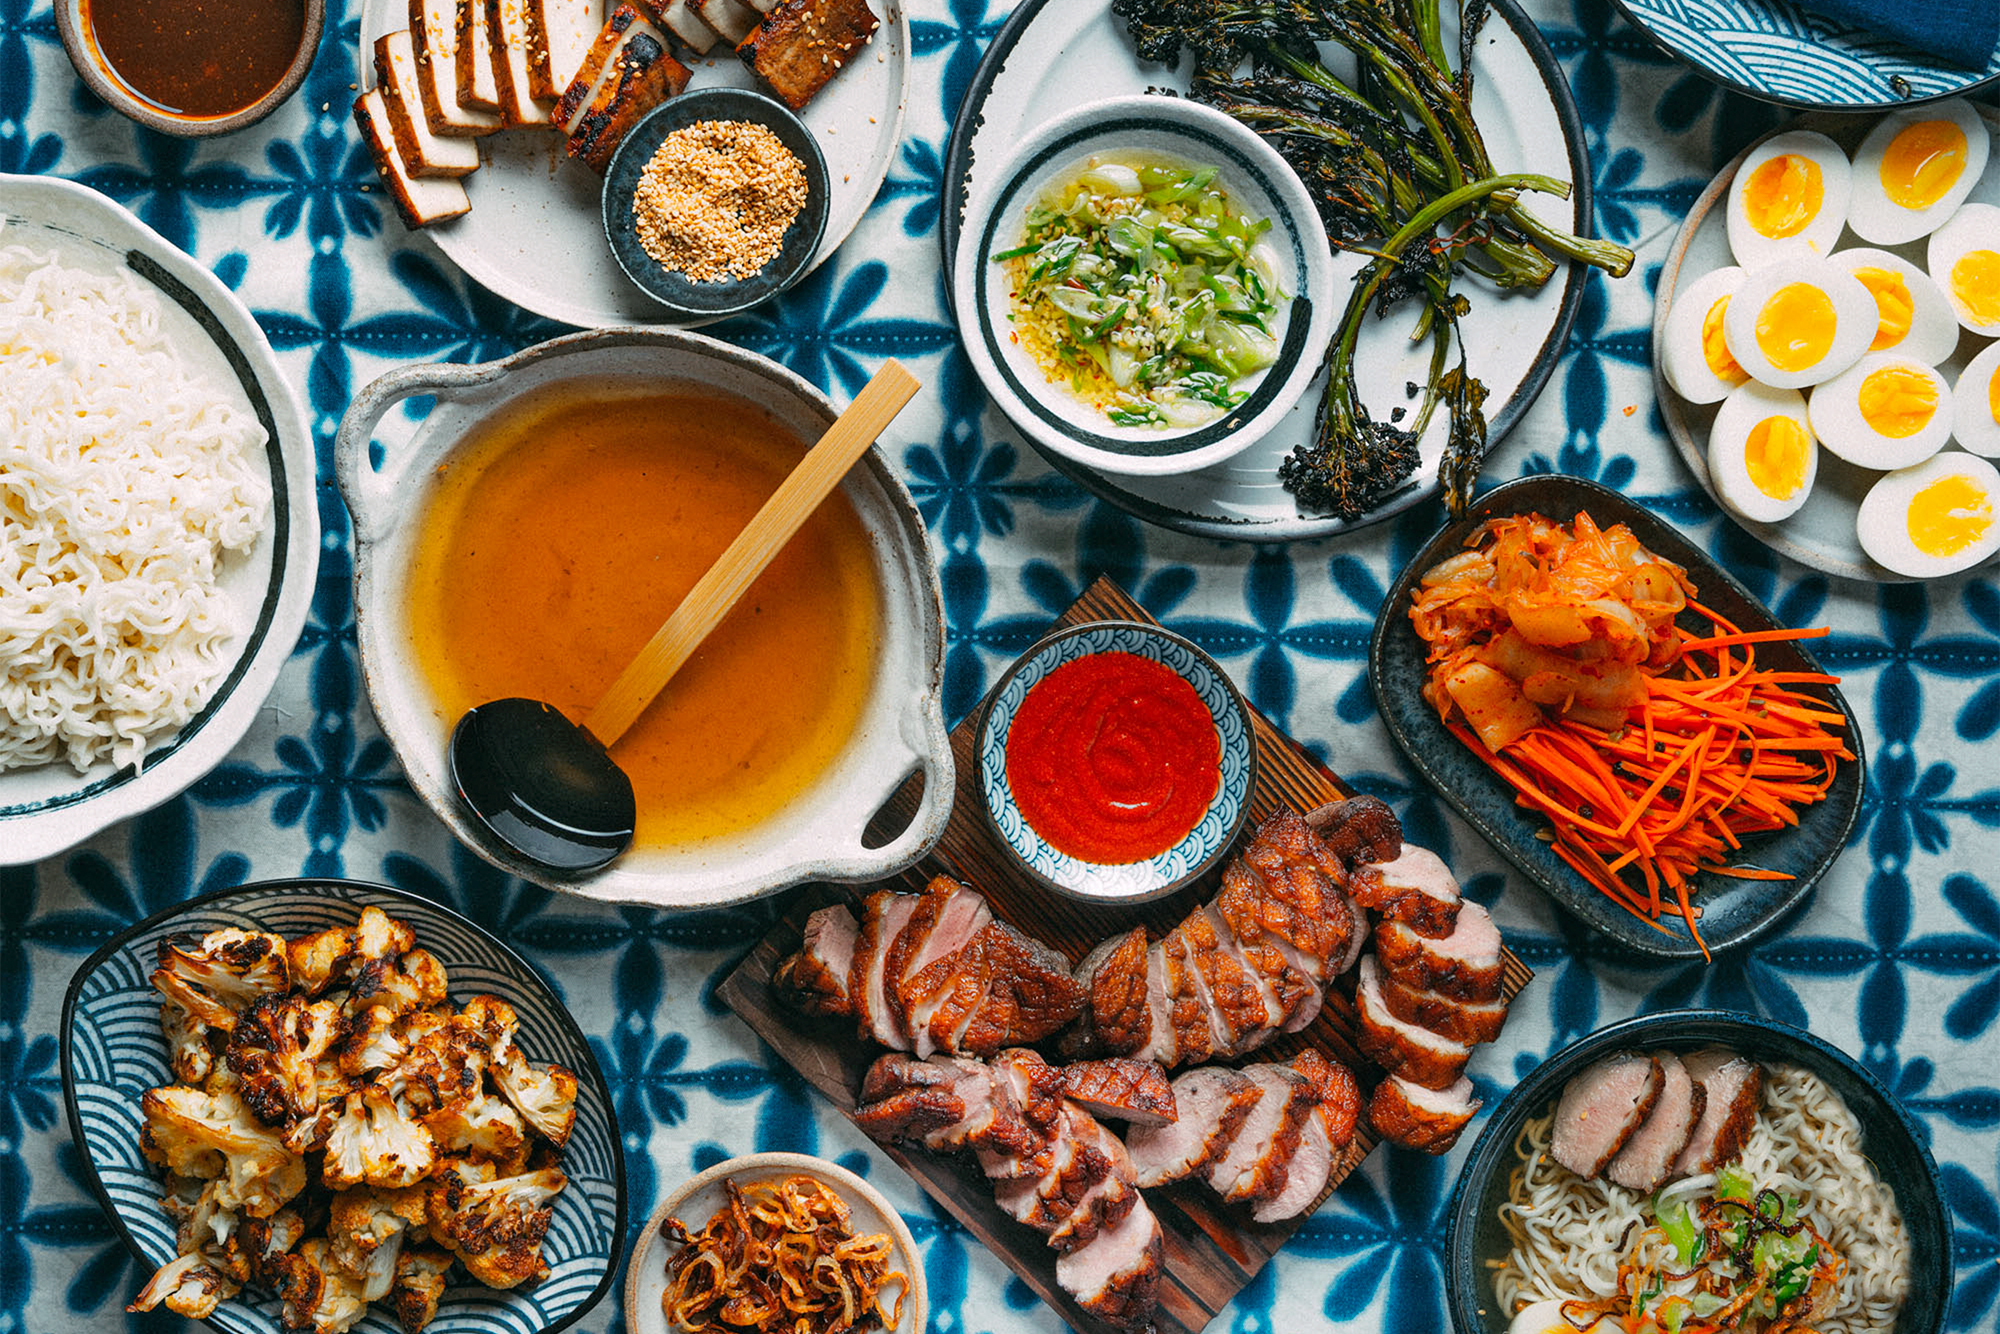 A table full of plated ramen ingredients